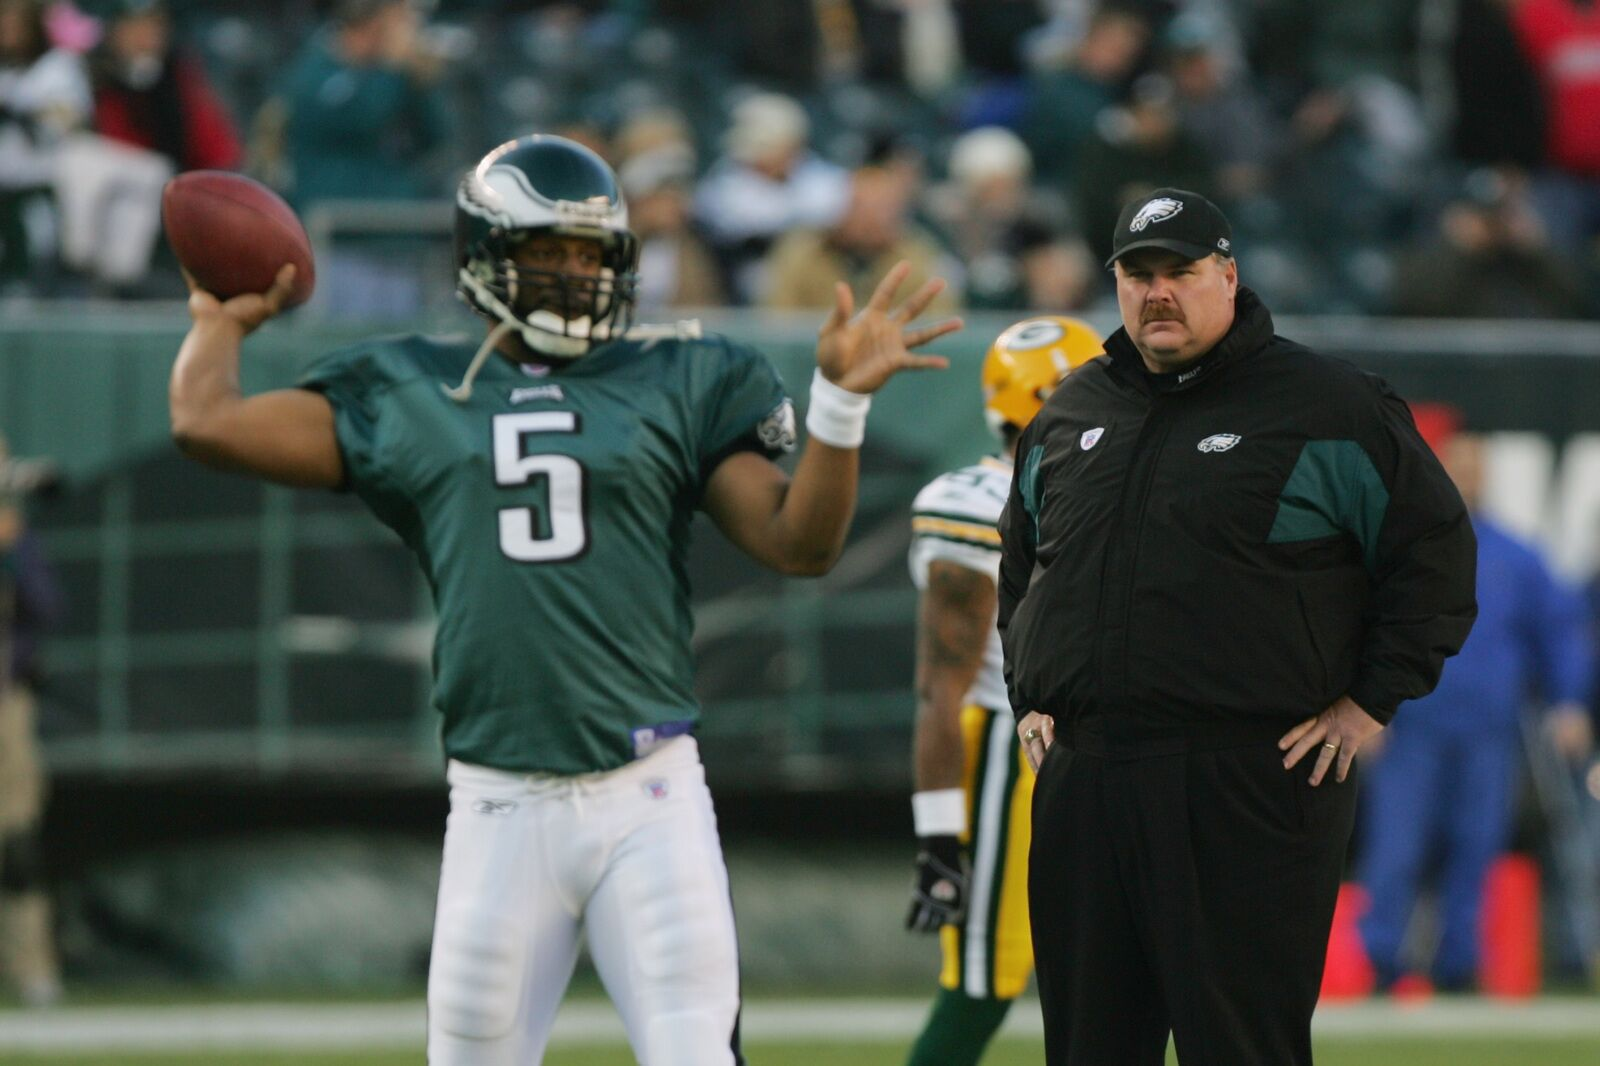 Philadelphia Eagles: Andy Reid was in town supporting former players